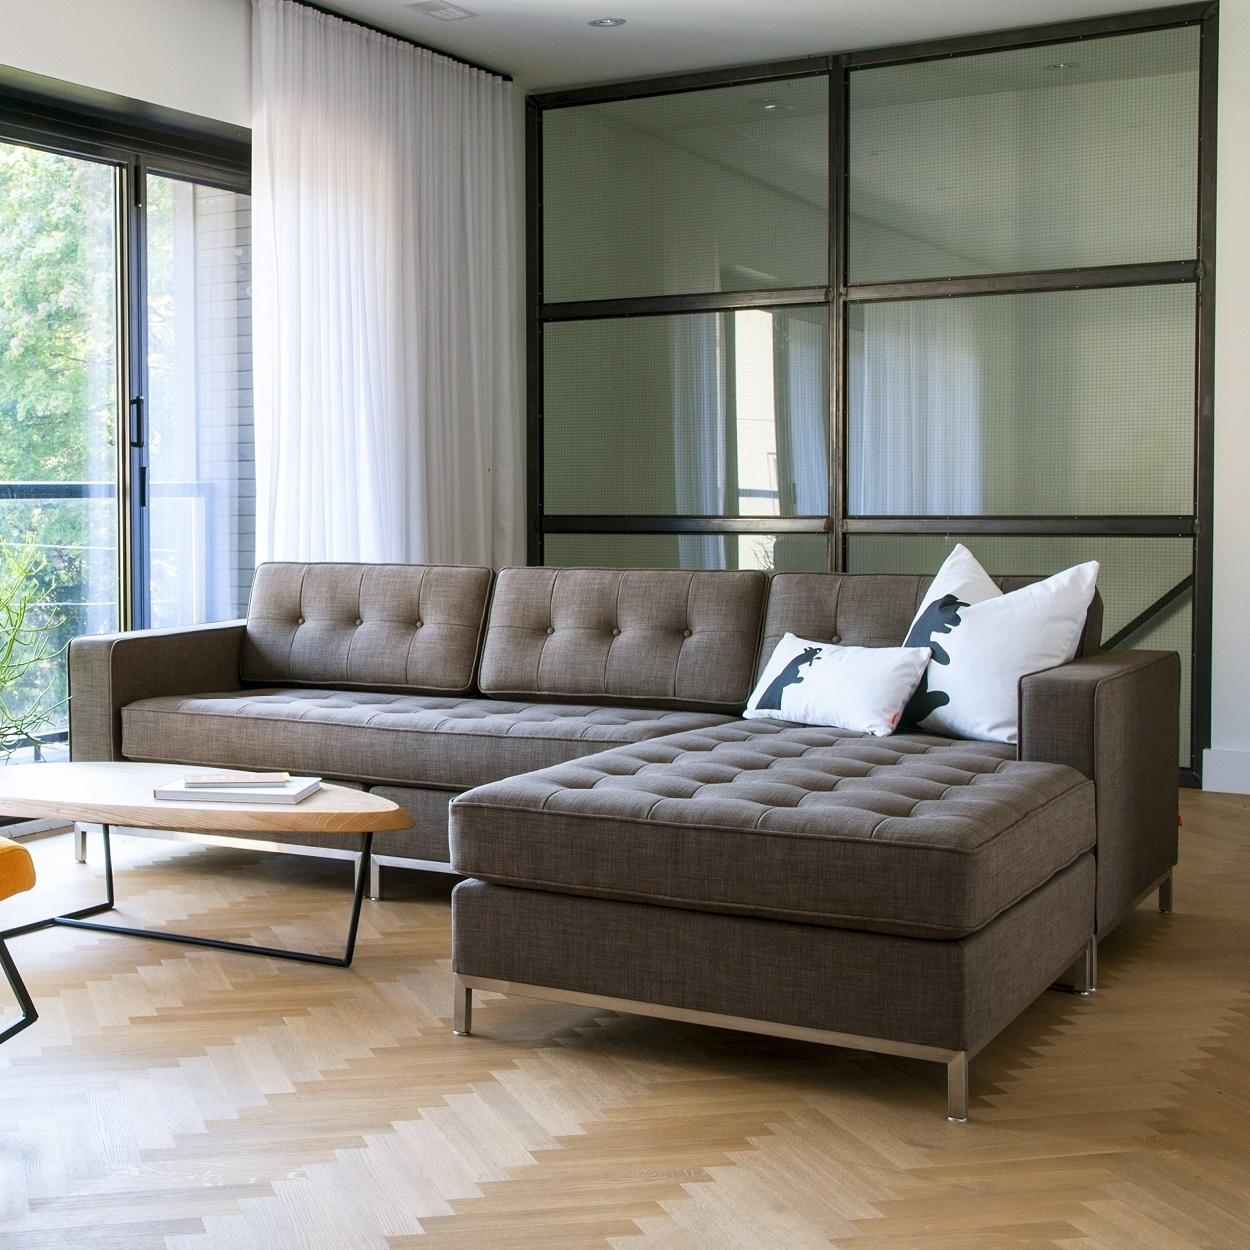 Gus Modern Furniture 2015 Summer Sale | Zin Home Blog Regarding Jane Bi Sectional Sofa (View 15 of 20)